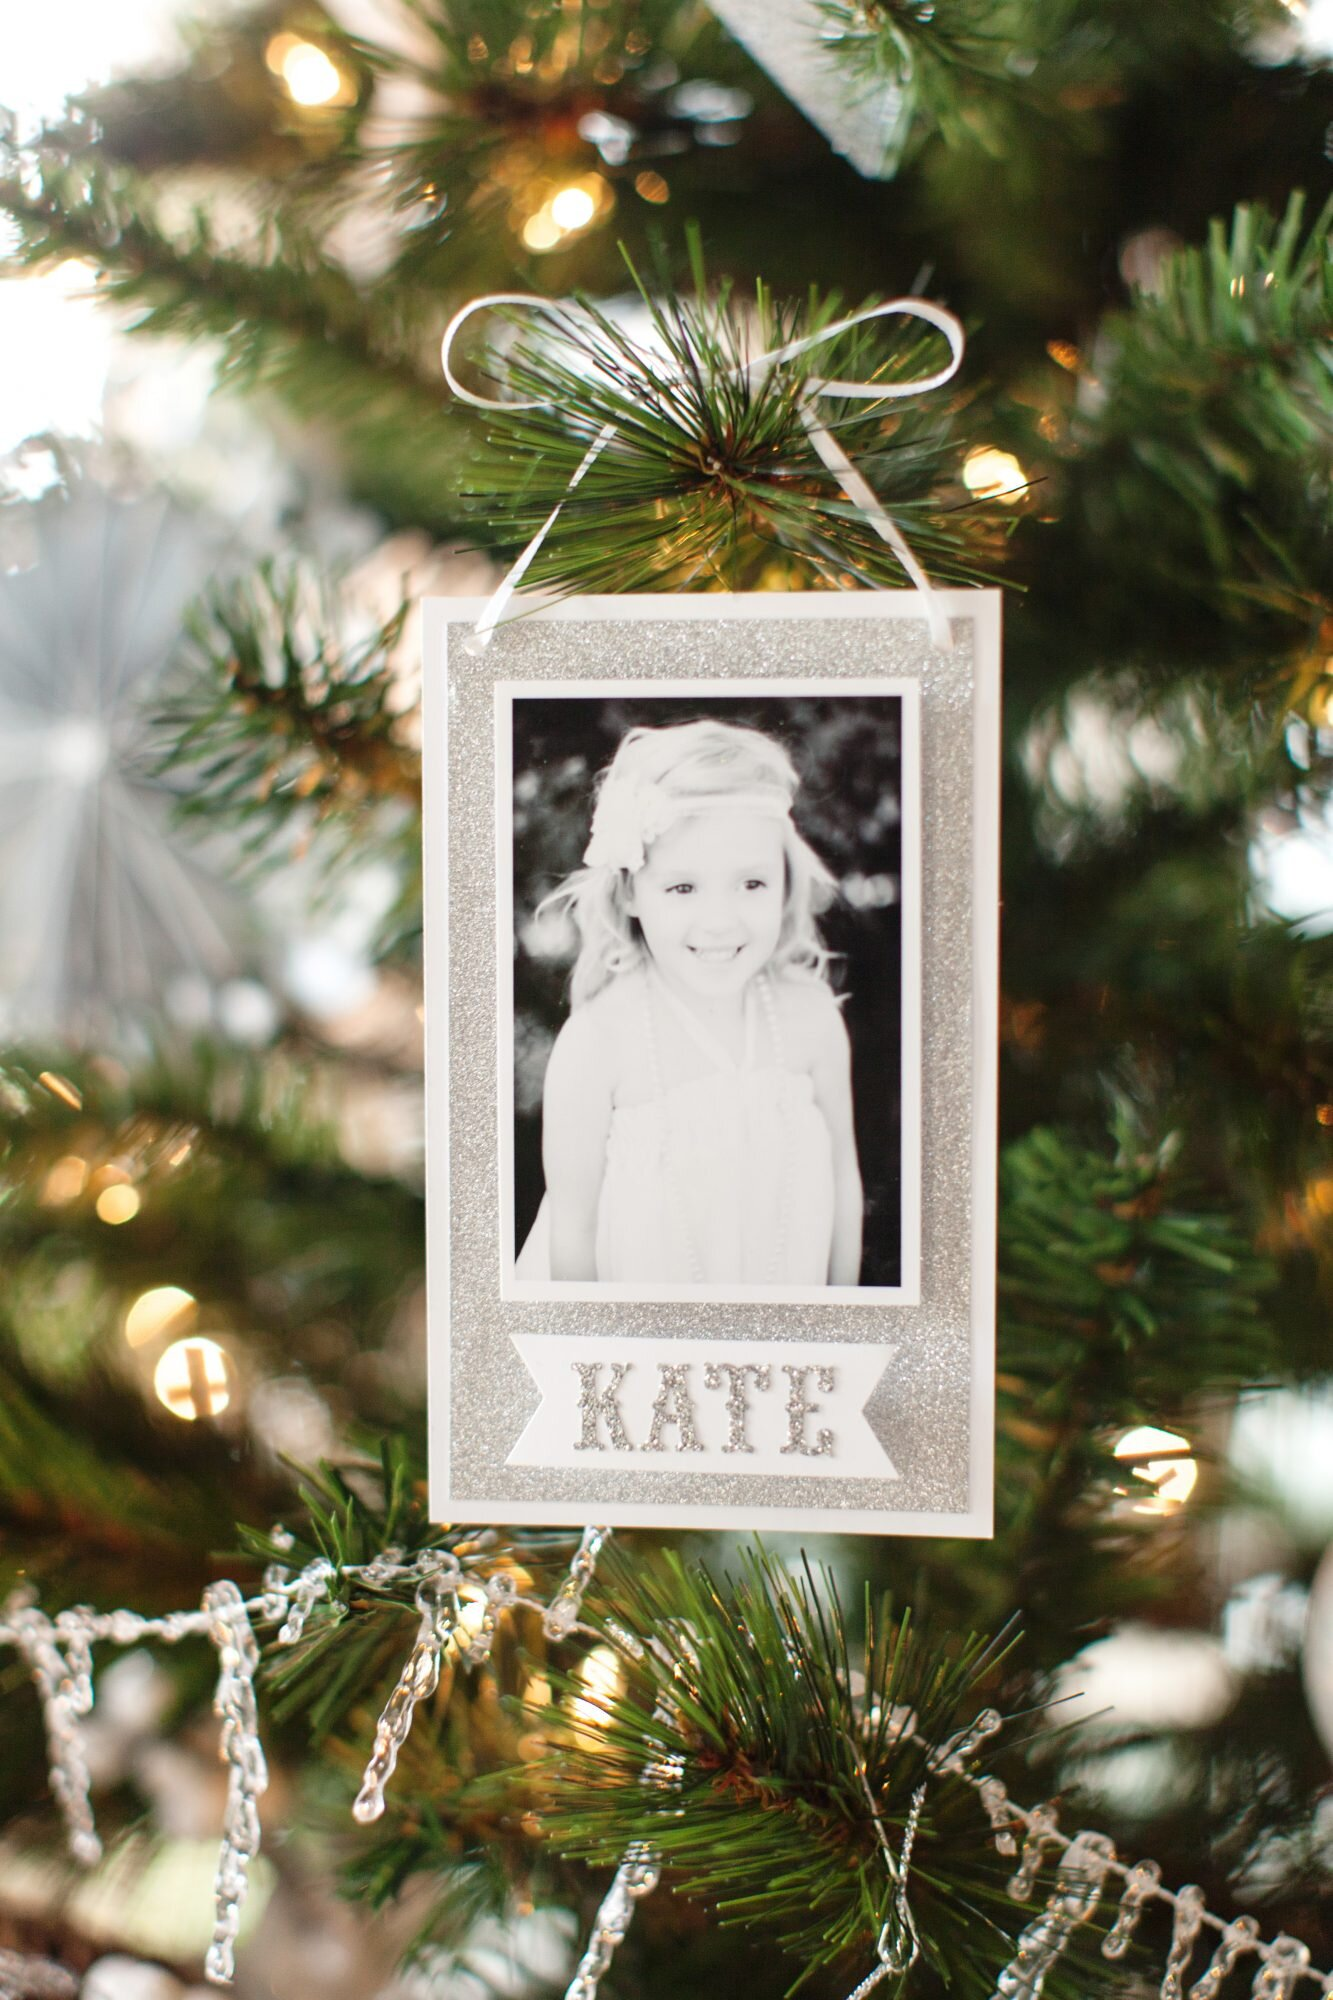 8 Adorable Diy Ornaments For Displaying Your Family Photos